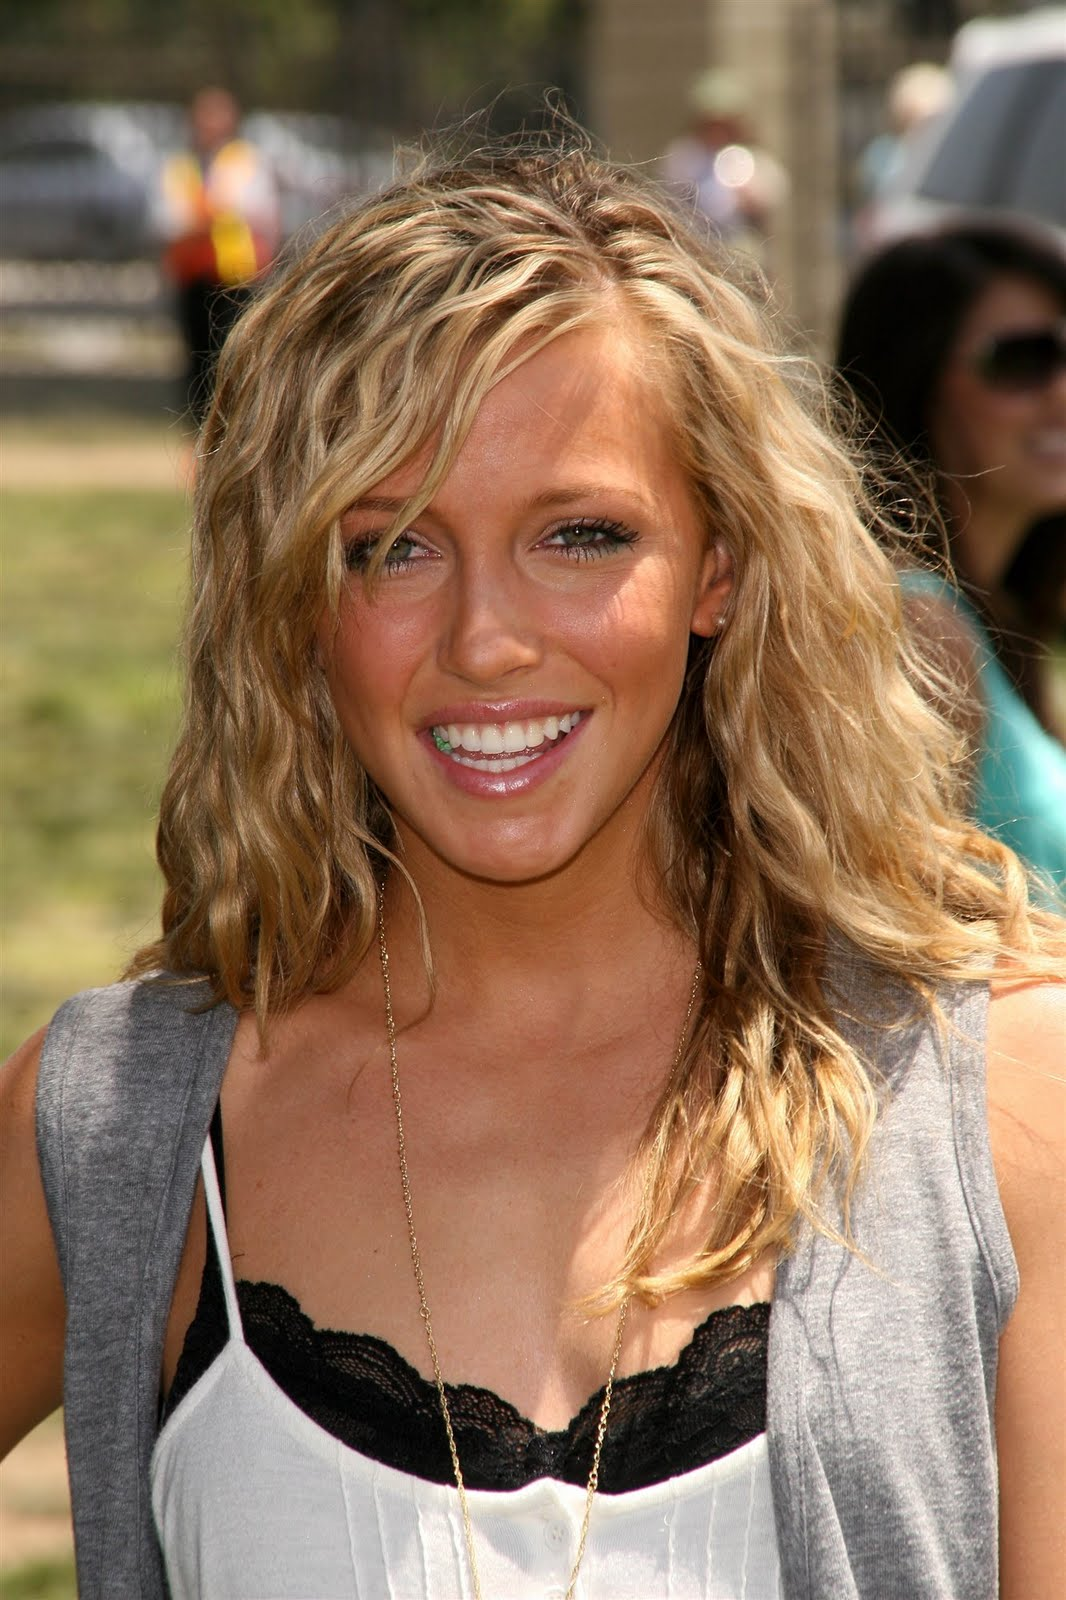 Katie Cassidy hot picture